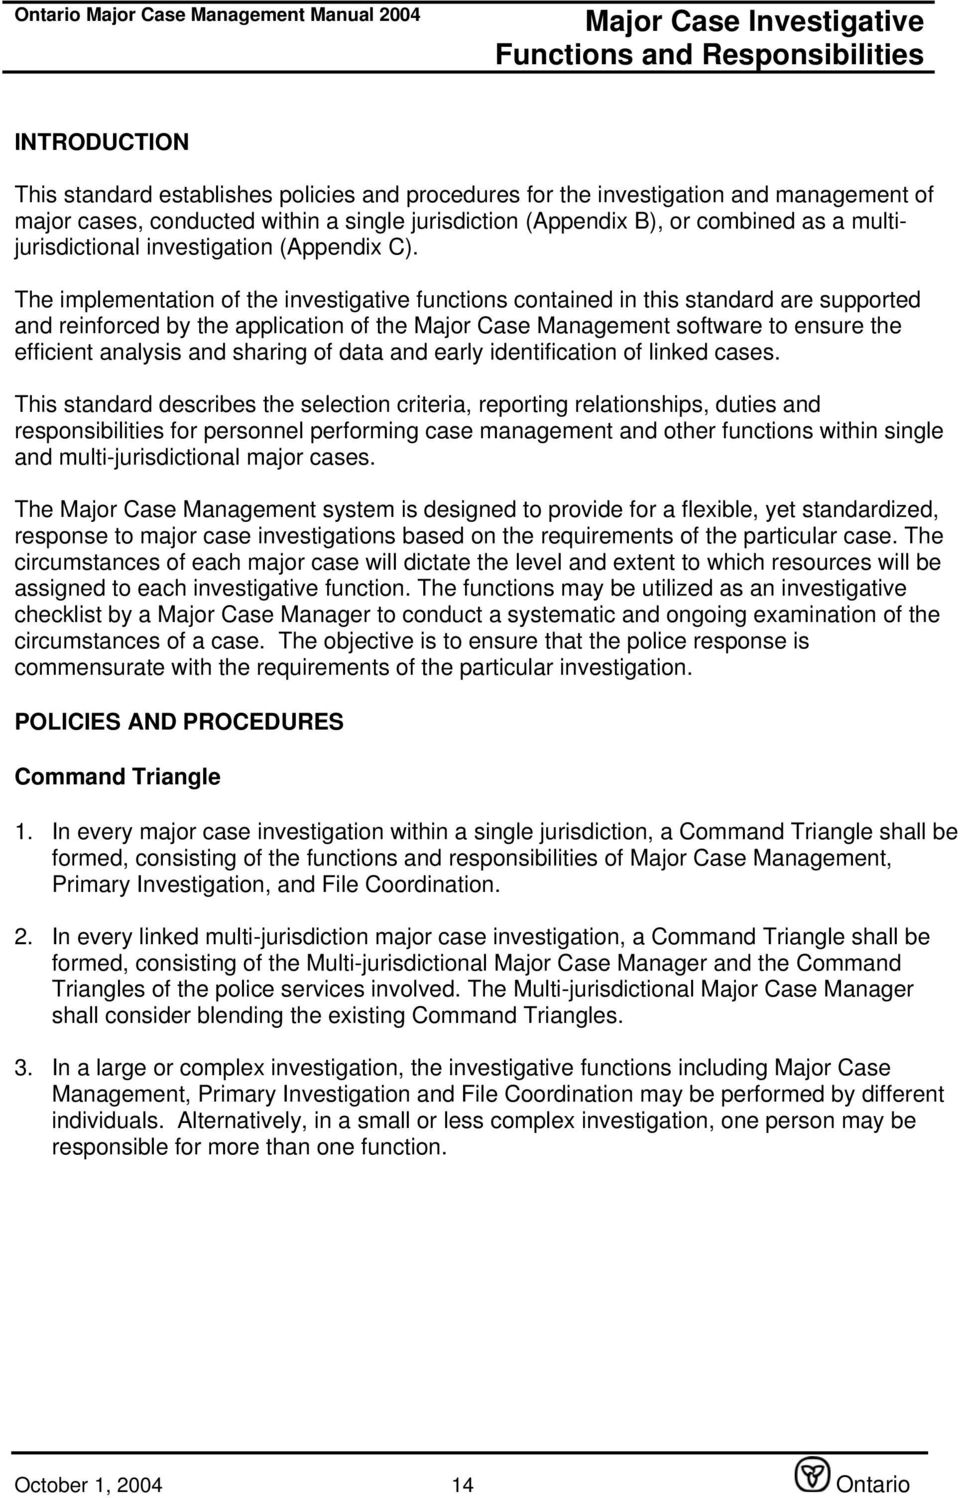 The implementation of the investigative functions contained in this  standard are supported and reinforced by the